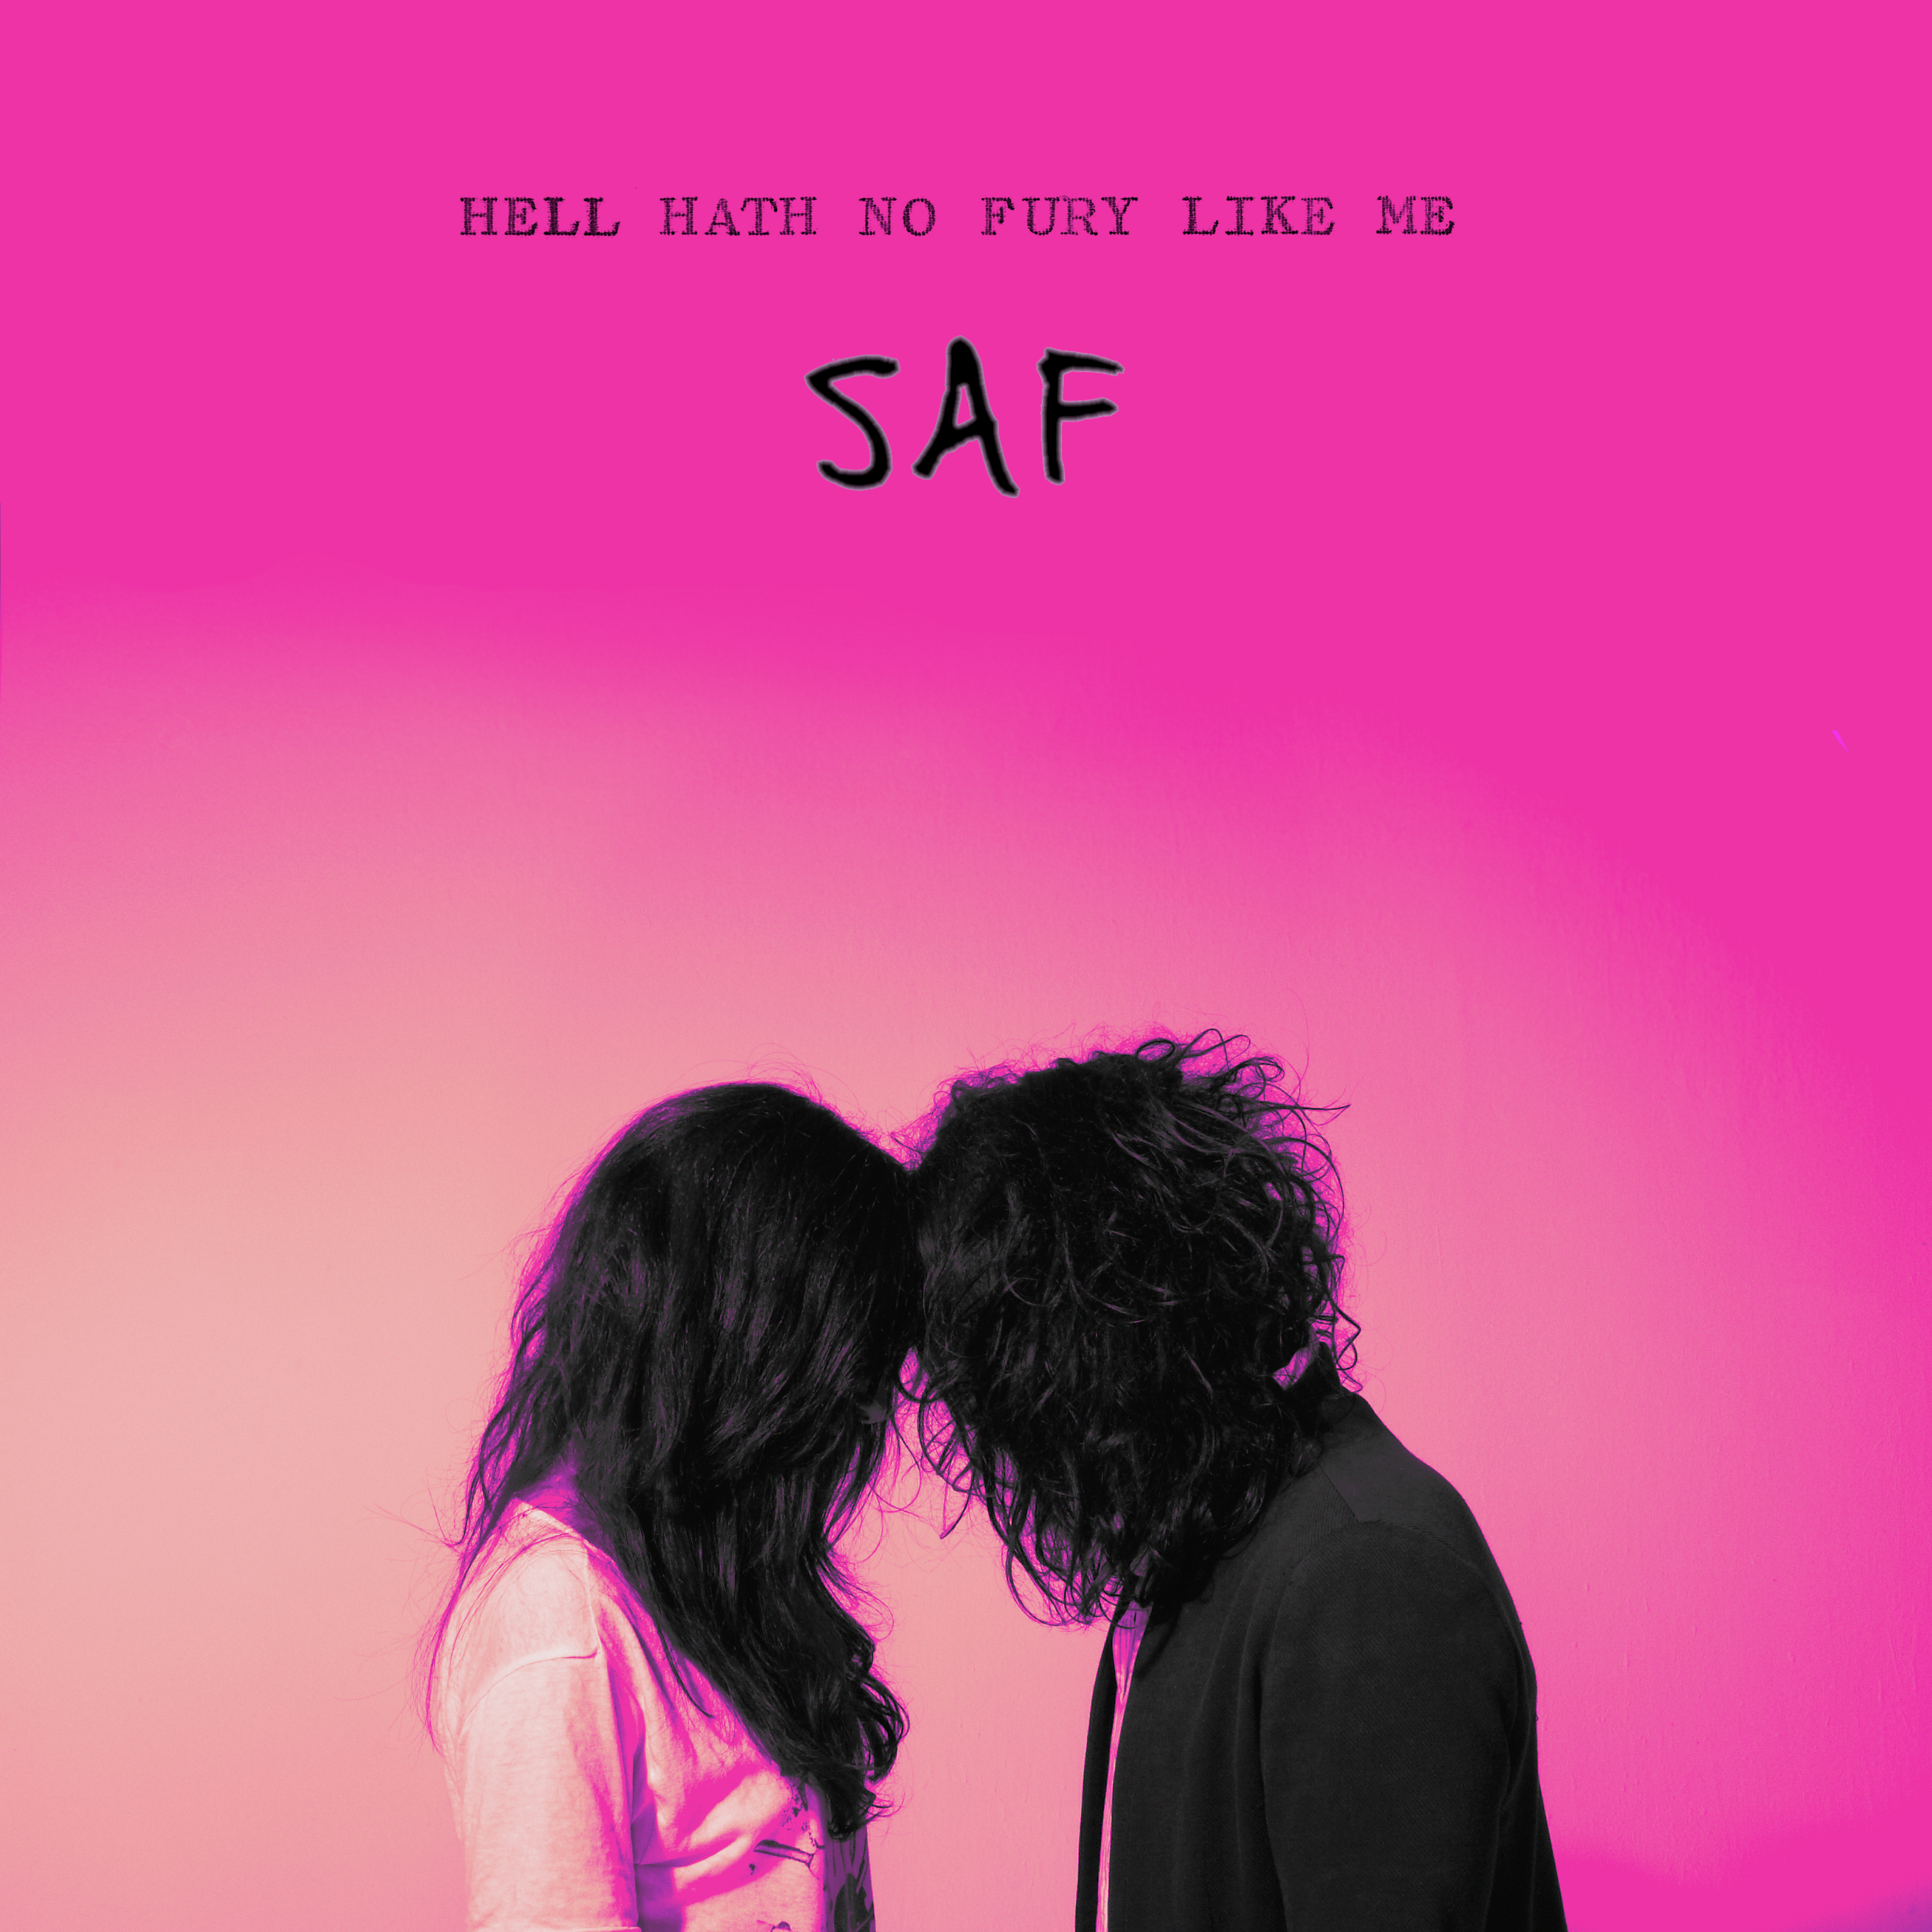 SAF par Nicol Despis - cover album promo15.jpg